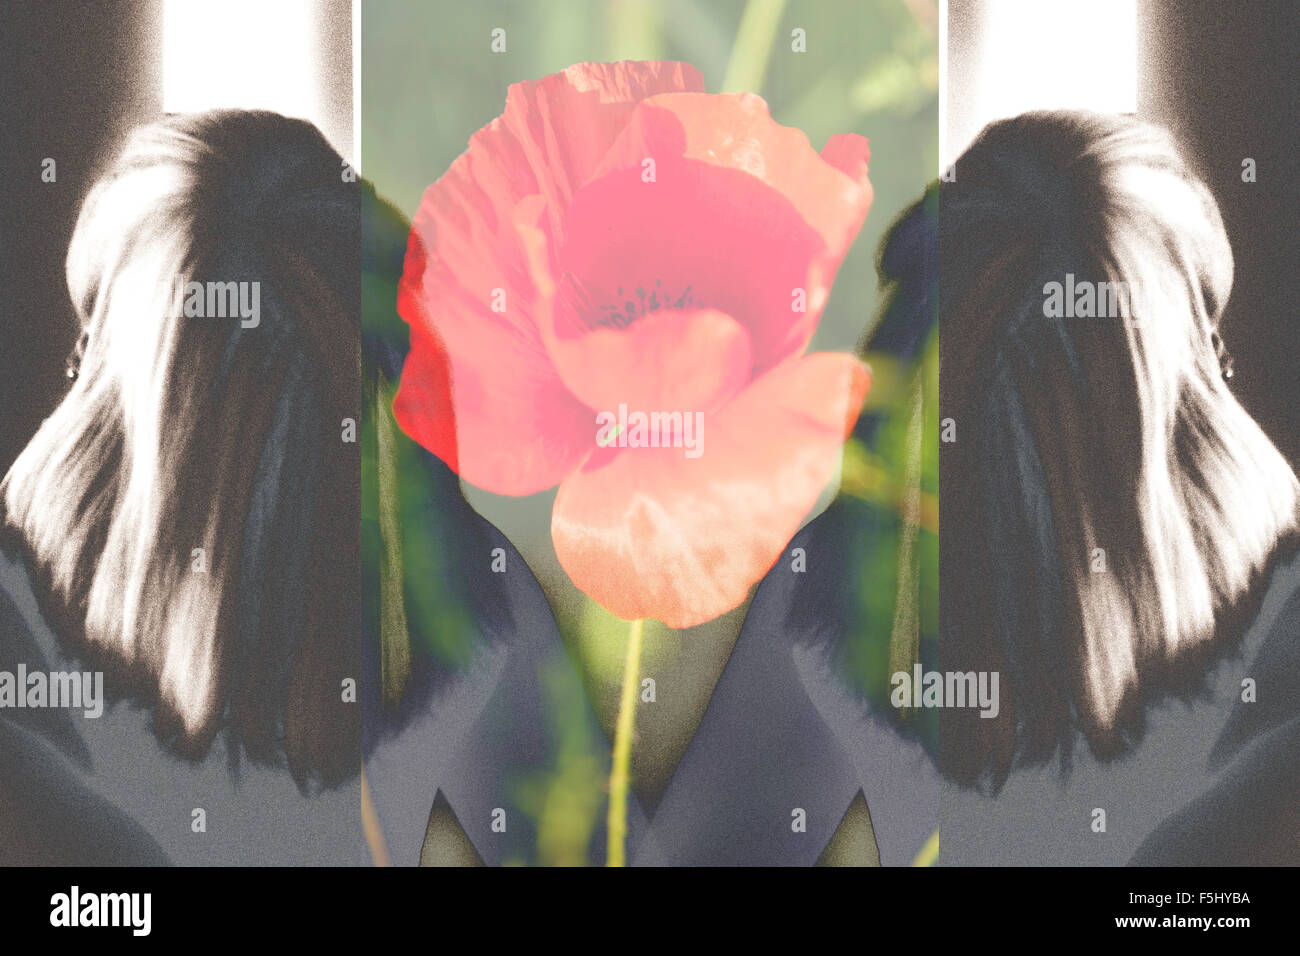 Textured double portrait of a woman viewed from the back with a red poppy in the middle. Digital art and illustration. - Stock Image